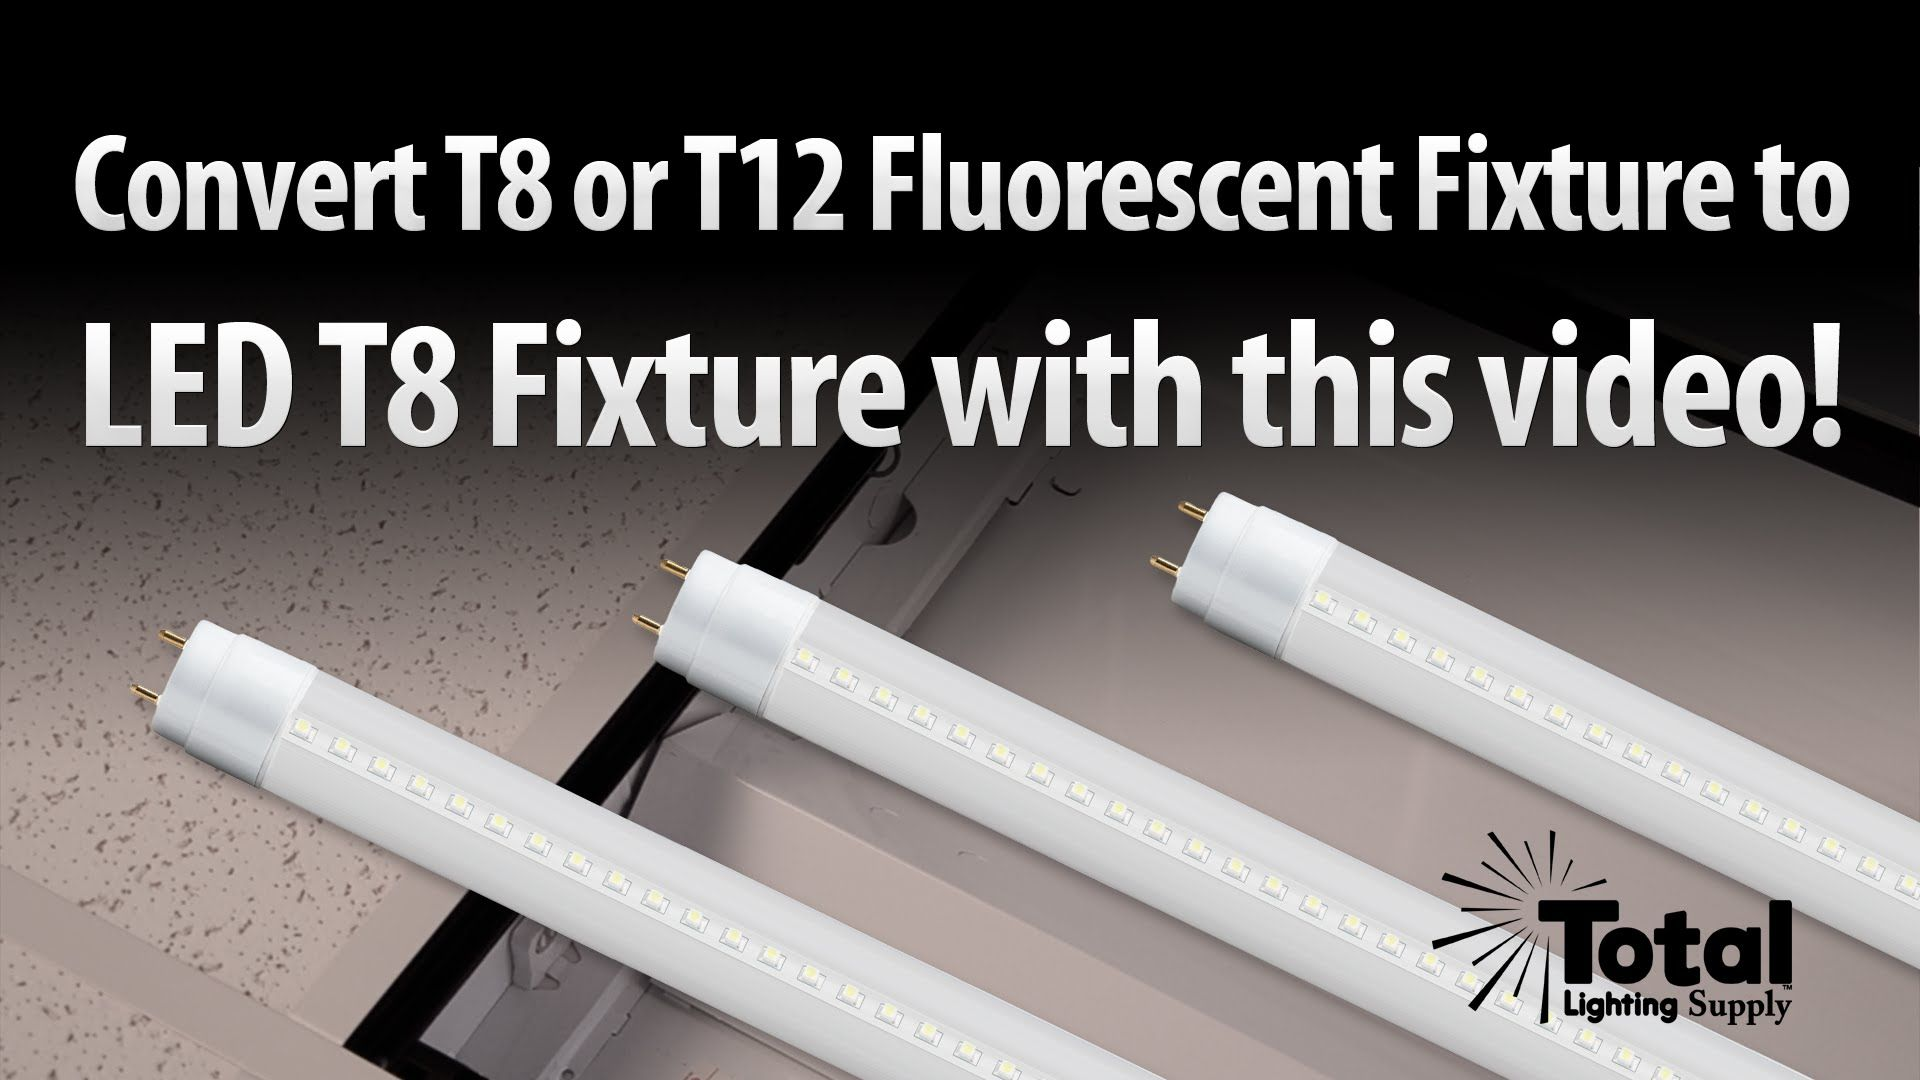 How To Change Your T12 Or T8 Fluorescent Fixture To Retrofit Led